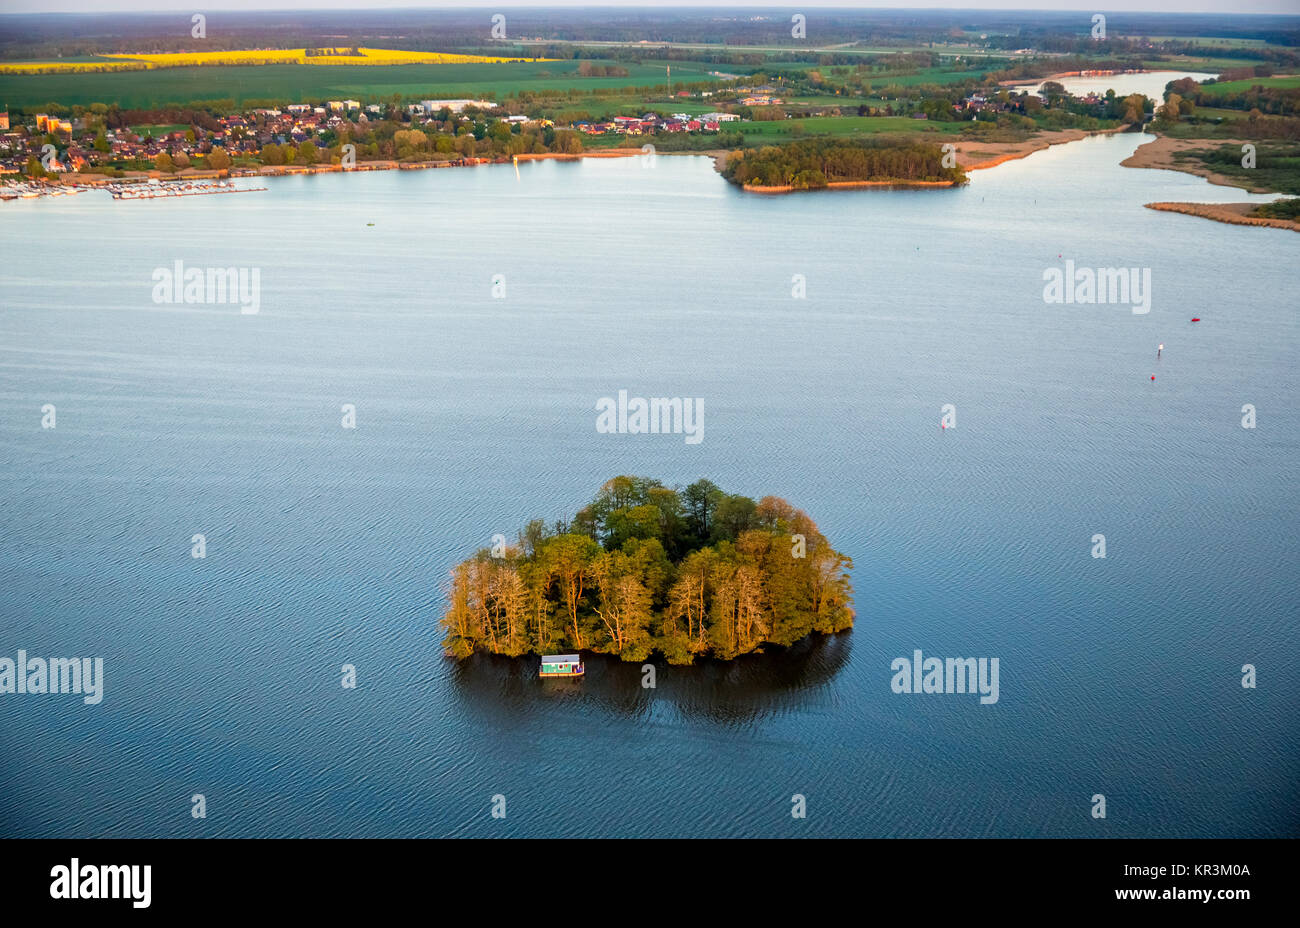 The Muritz with heart-shaped island and residential boat and pleasure boat in the sunset, Vipperow, Mecklenburg Stock Photo